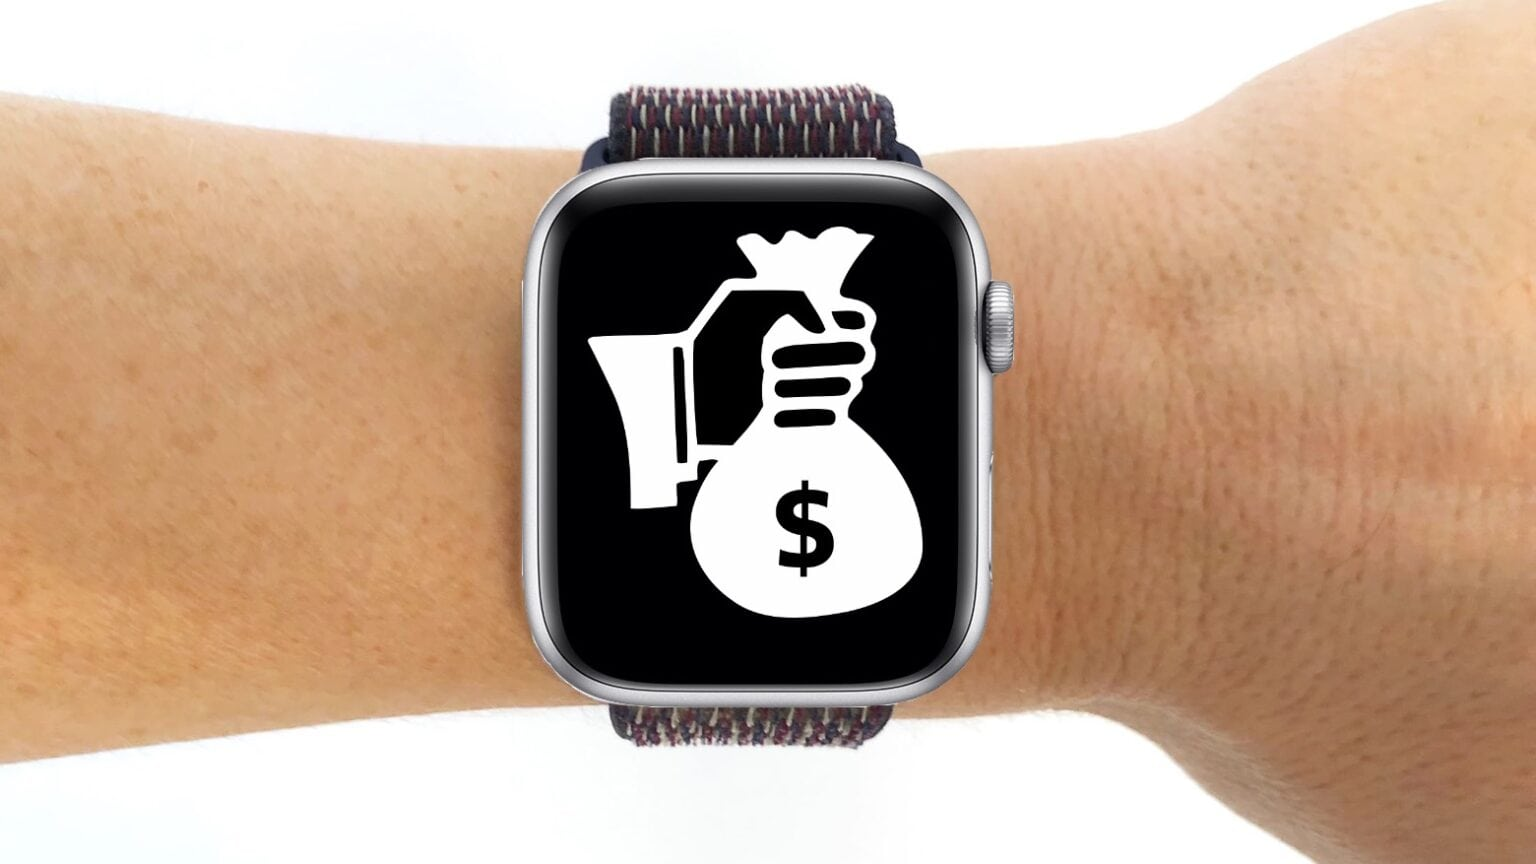 Clever robbers use Apple Watch to steal $500,000 from drug dealer